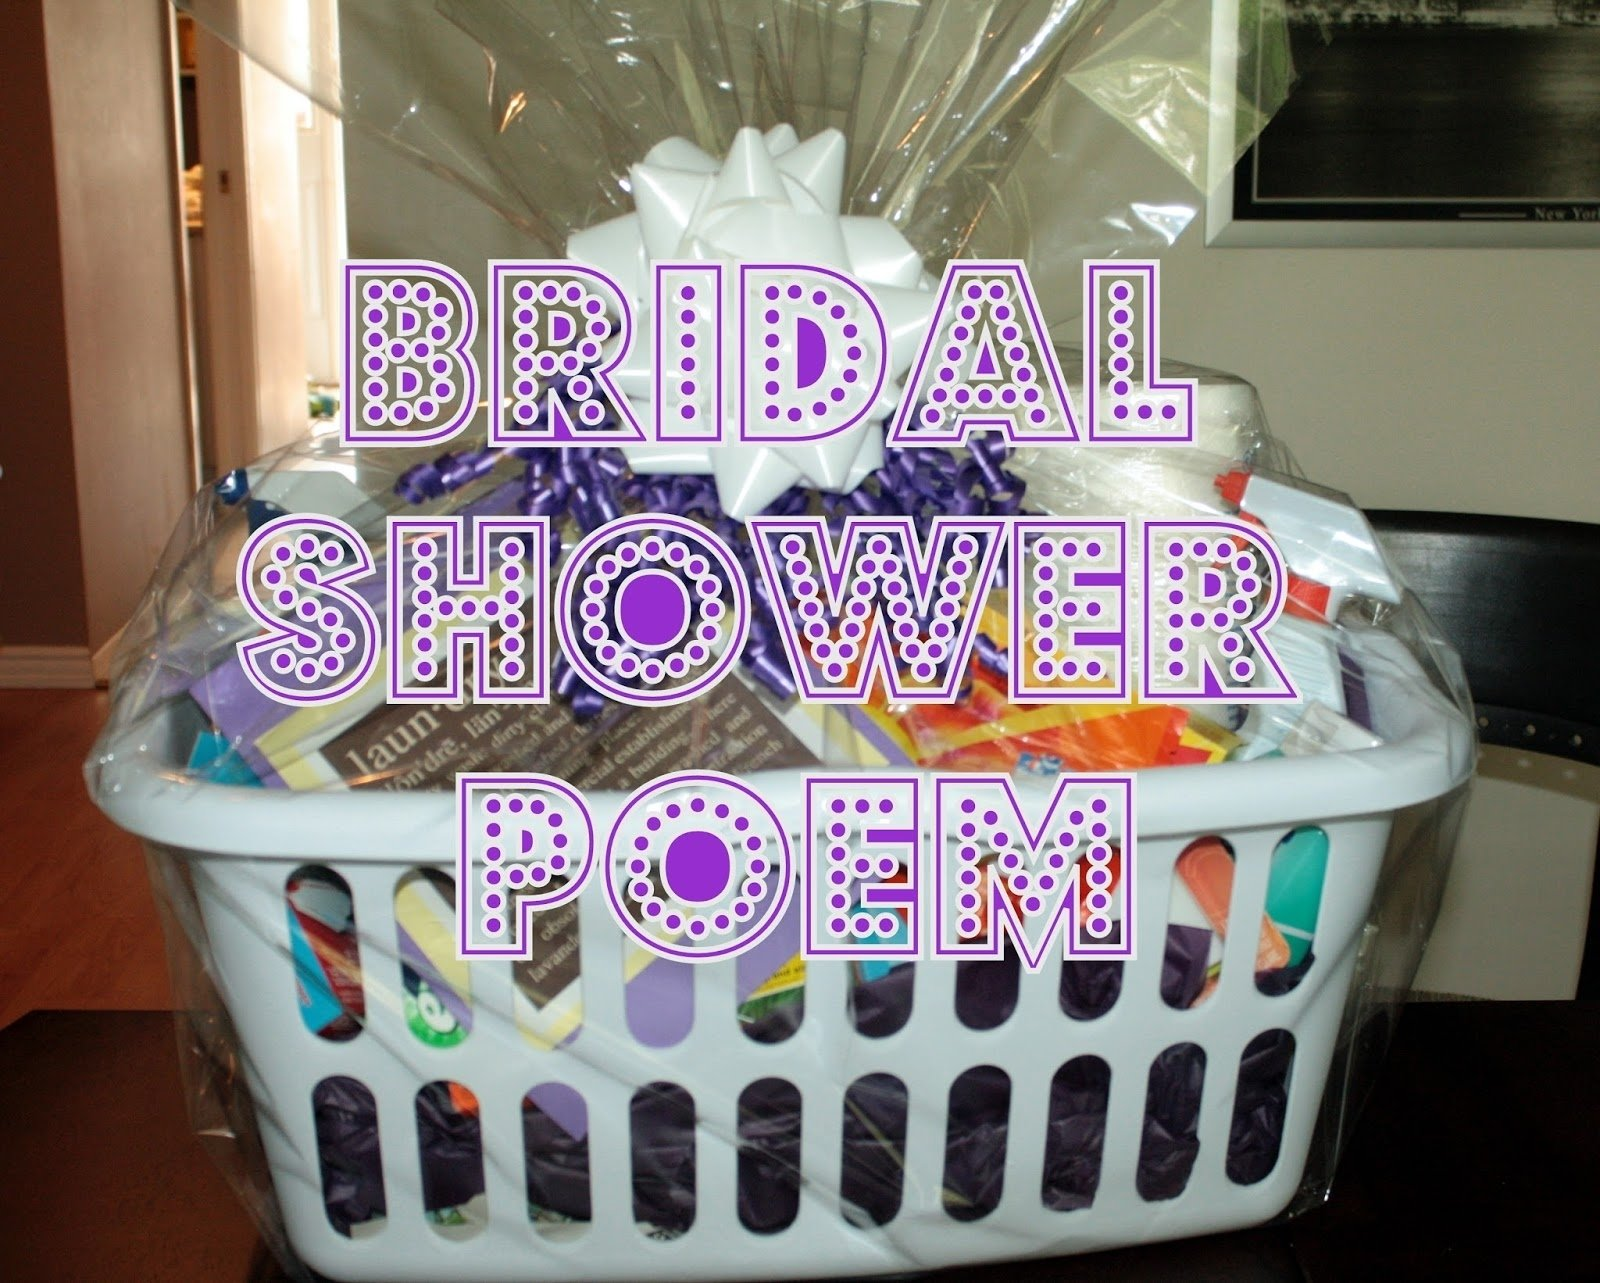 10 Great Gift Ideas For Bridal Shower gingerbabymama fun practical bridal shower gift 3 2020